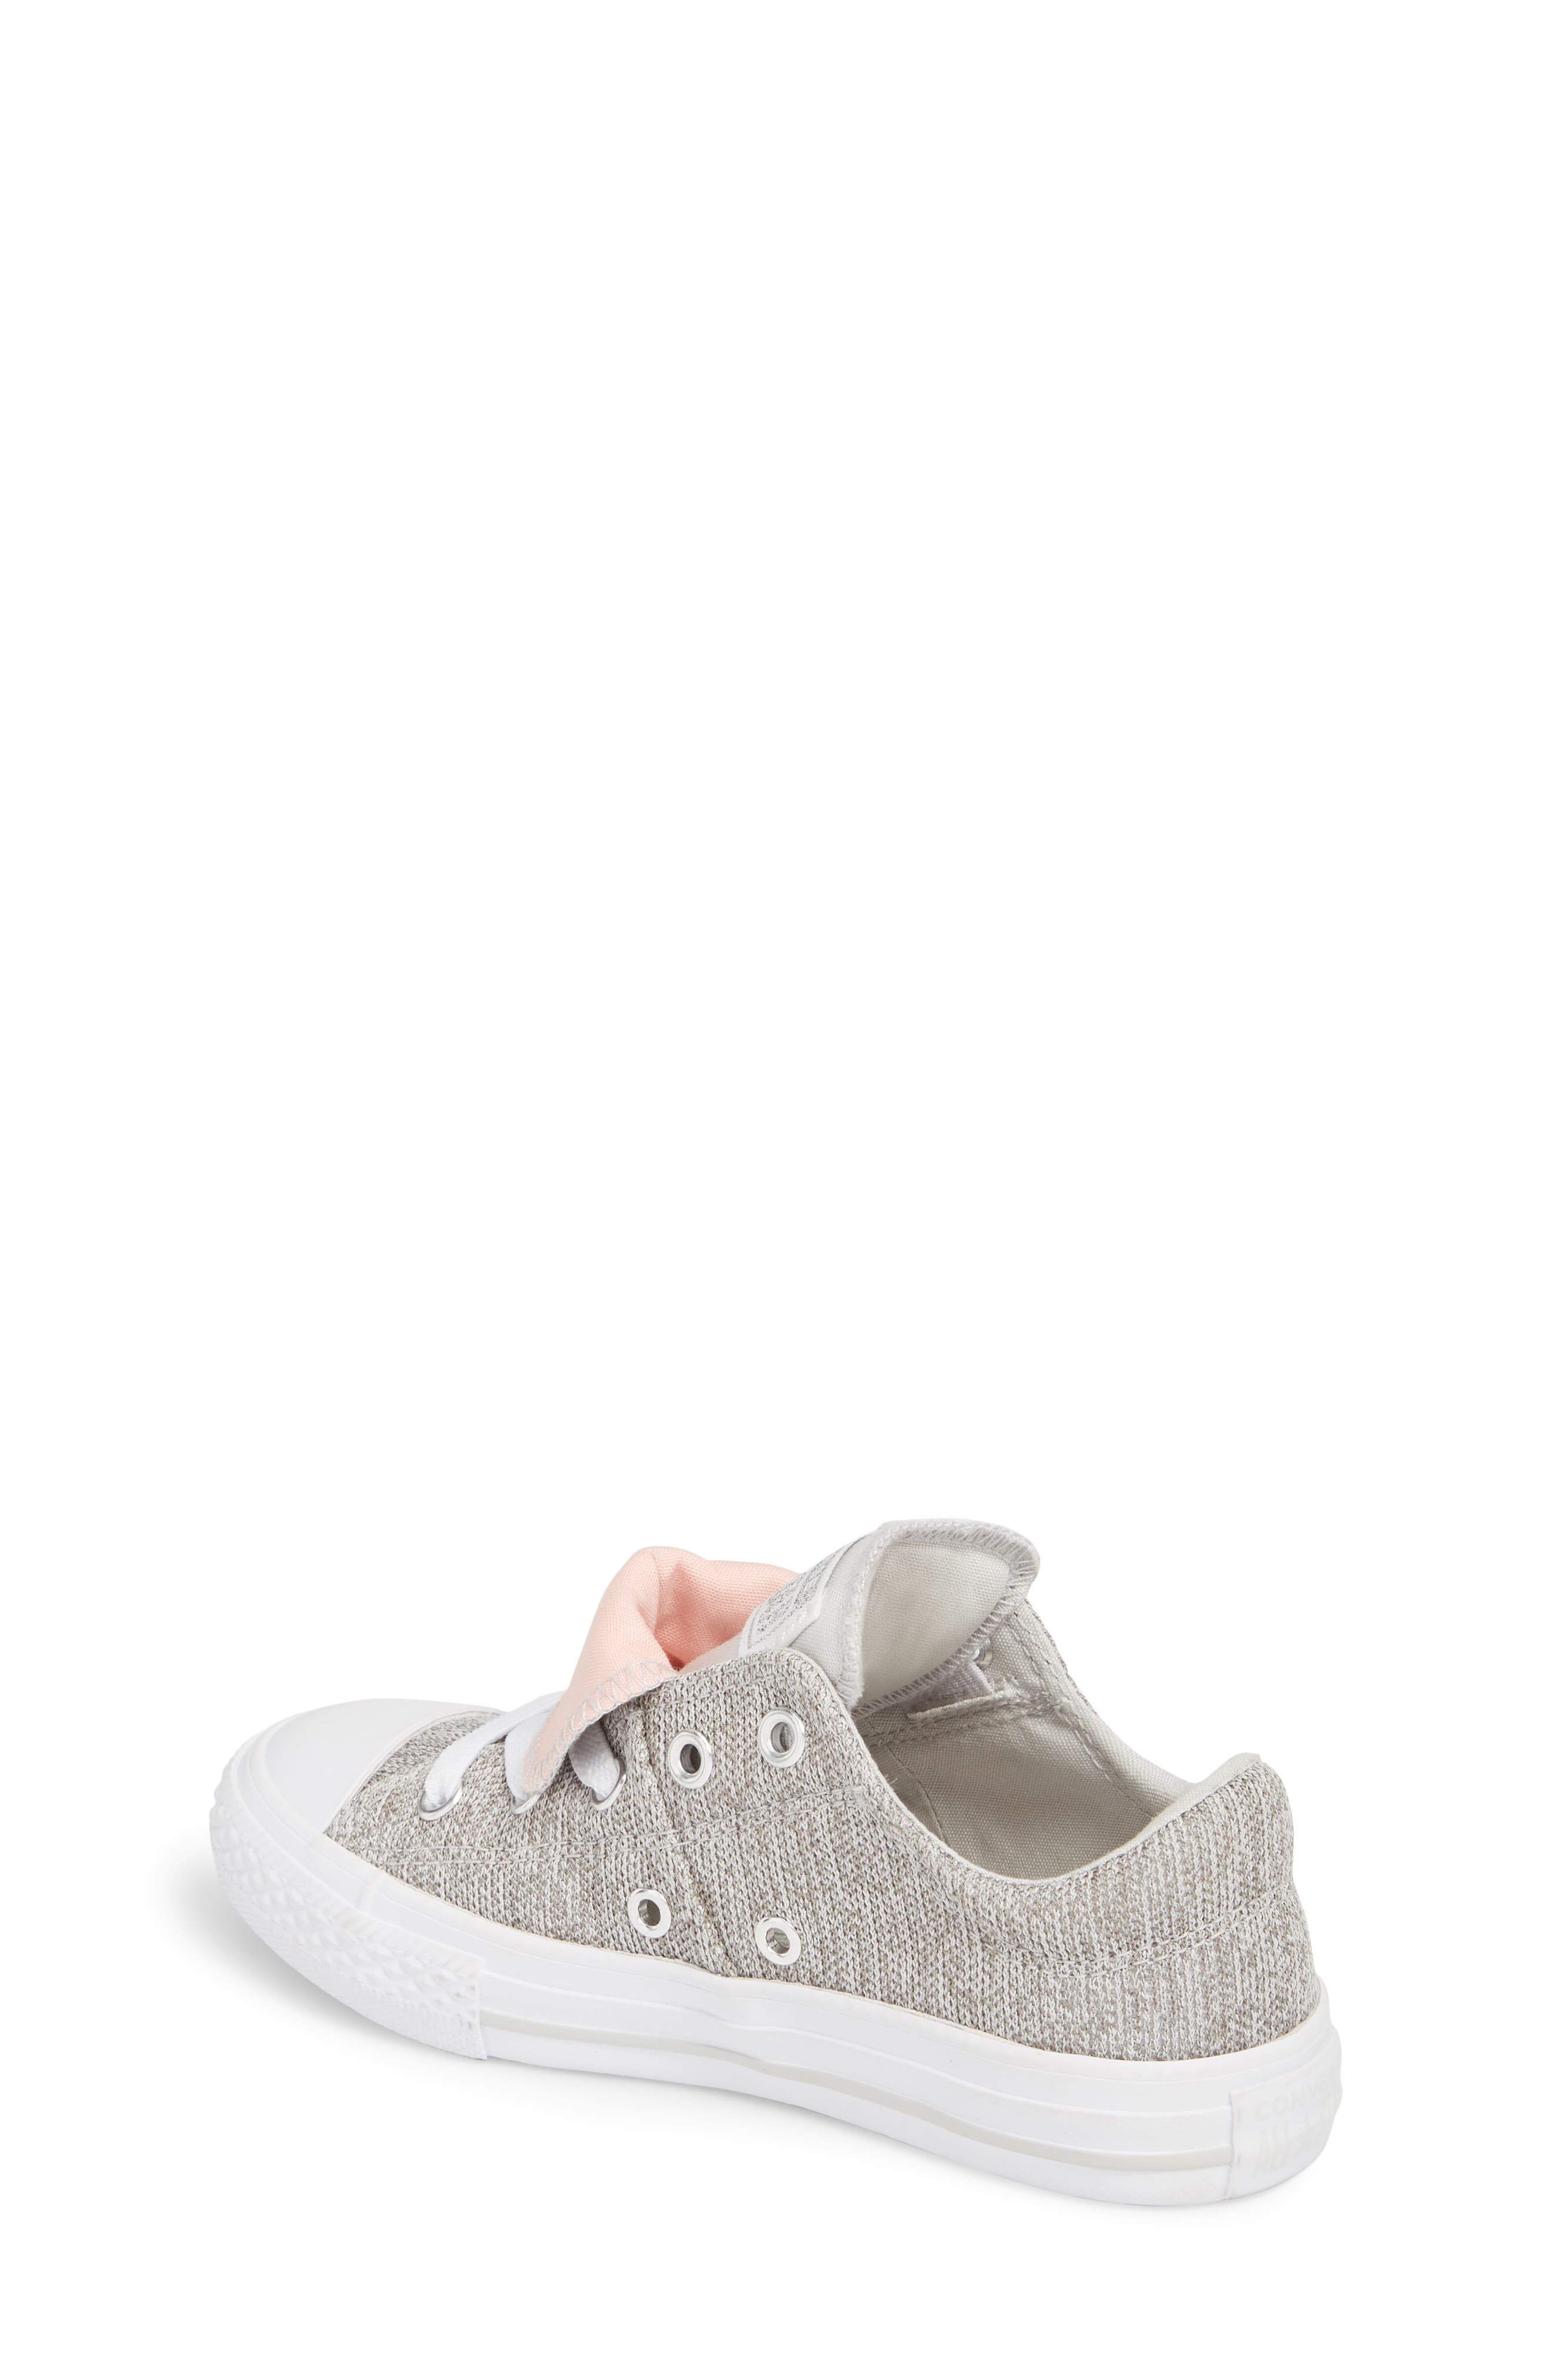 Chuck Taylor<sup>®</sup> All Star<sup>®</sup> Maddie Double Tongue Sneaker,                             Alternate thumbnail 2, color,                             LIGHT GREY